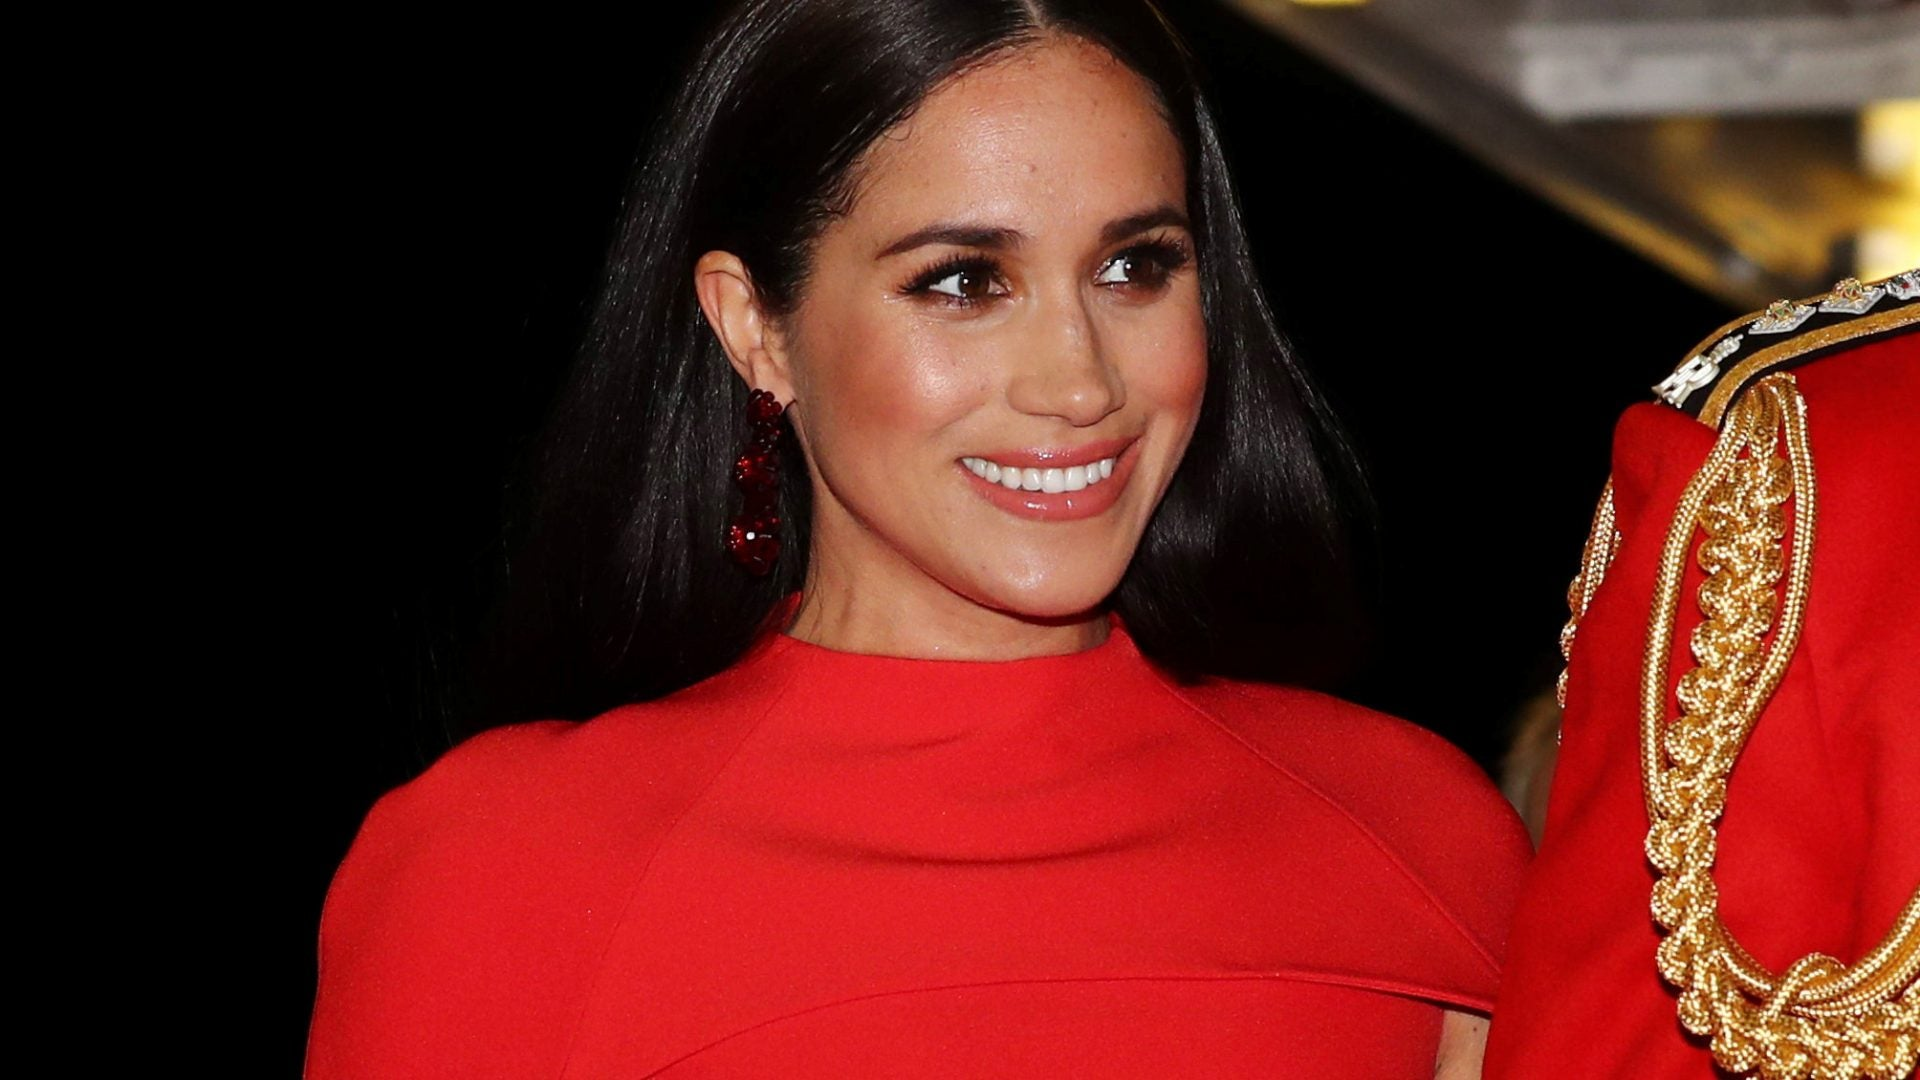 MSNBC Guest Says Meghan Markle Is 'Five Clicks Up From Trailer Trash'